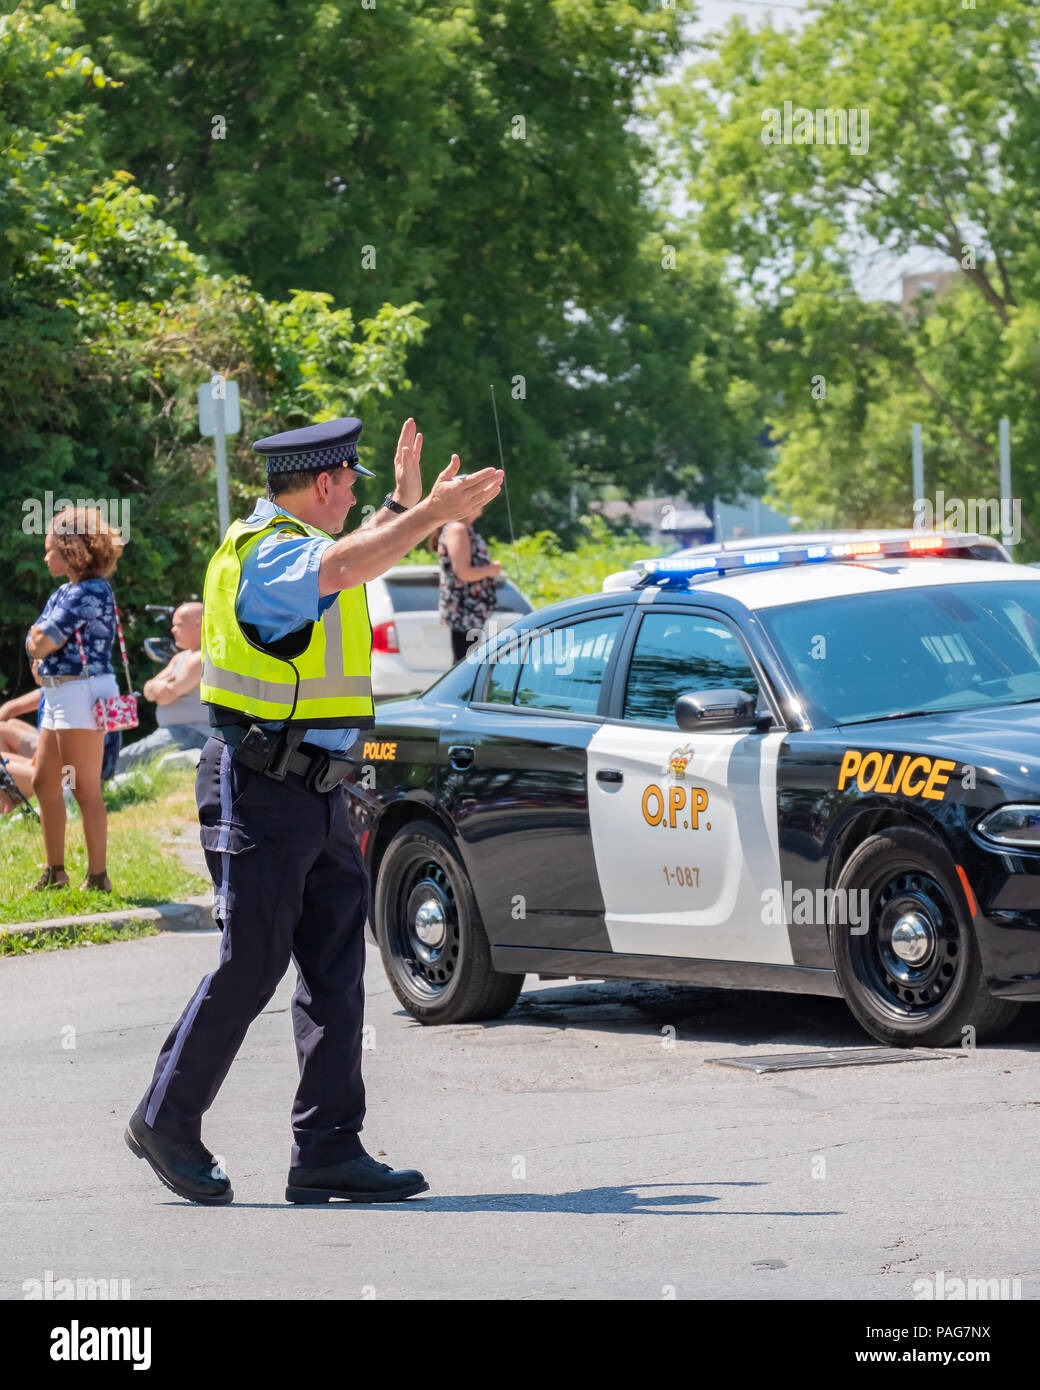 An auxiliary police officer directs traffic on a busy street during an event in Orillia Ontario. - Stock Image